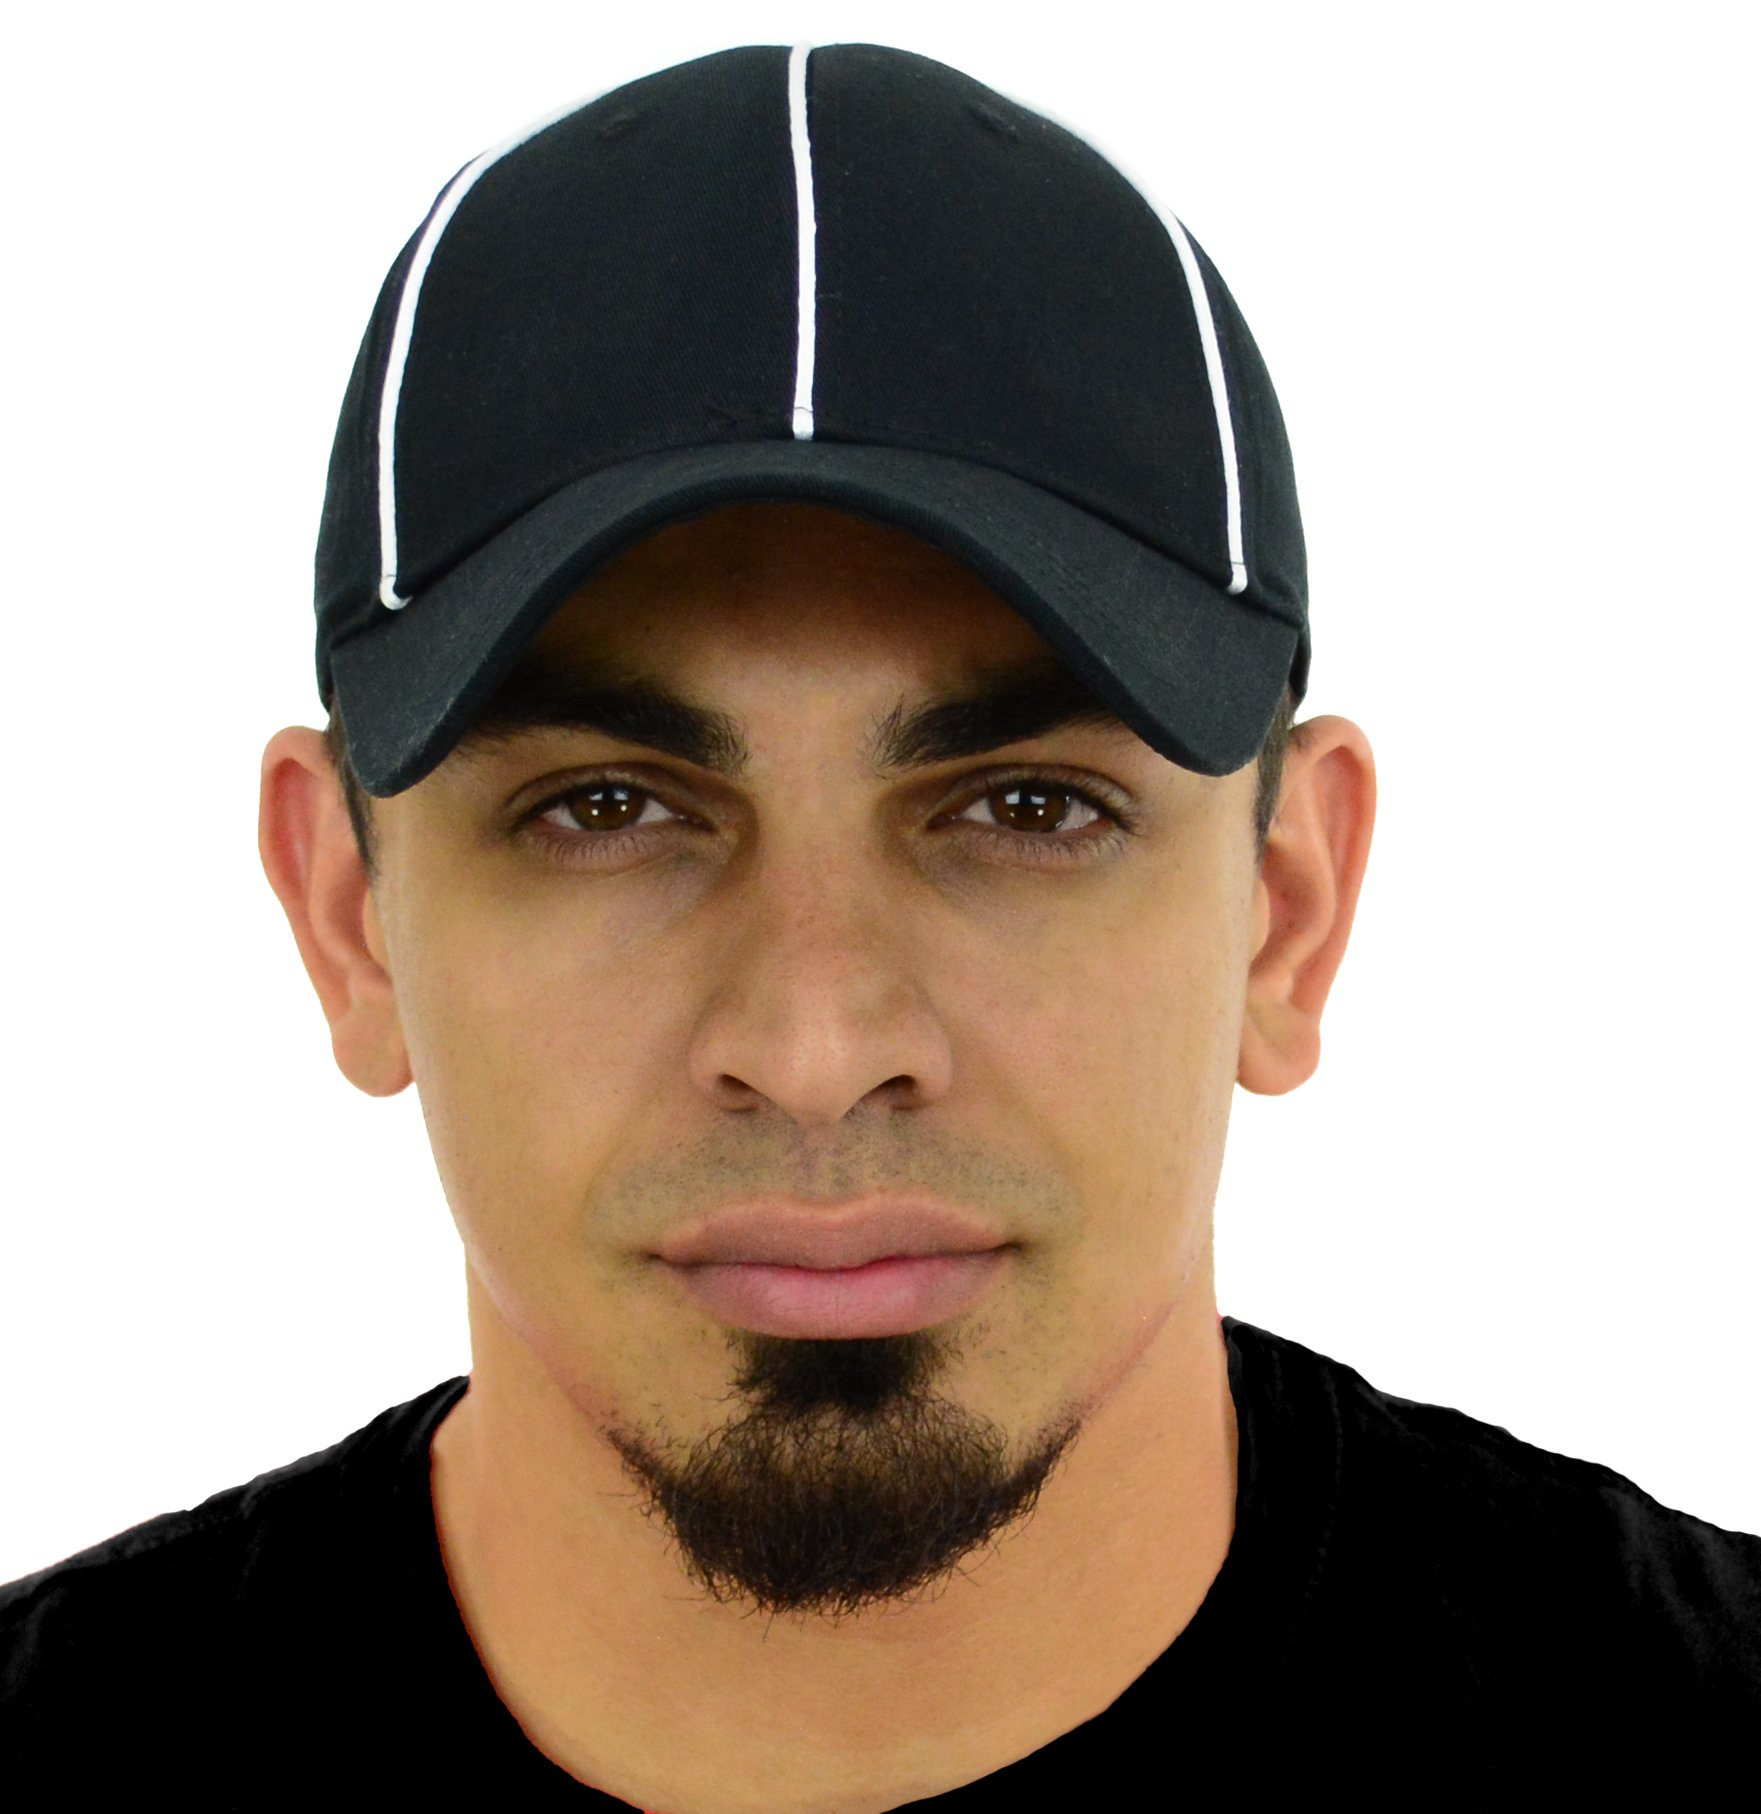 Mato & Hash Official Referee Hats | Fitted and Adjustable Hats for Umpires,Referees,and Officials - 12PK Adjustable Black/White CA2099 S/M